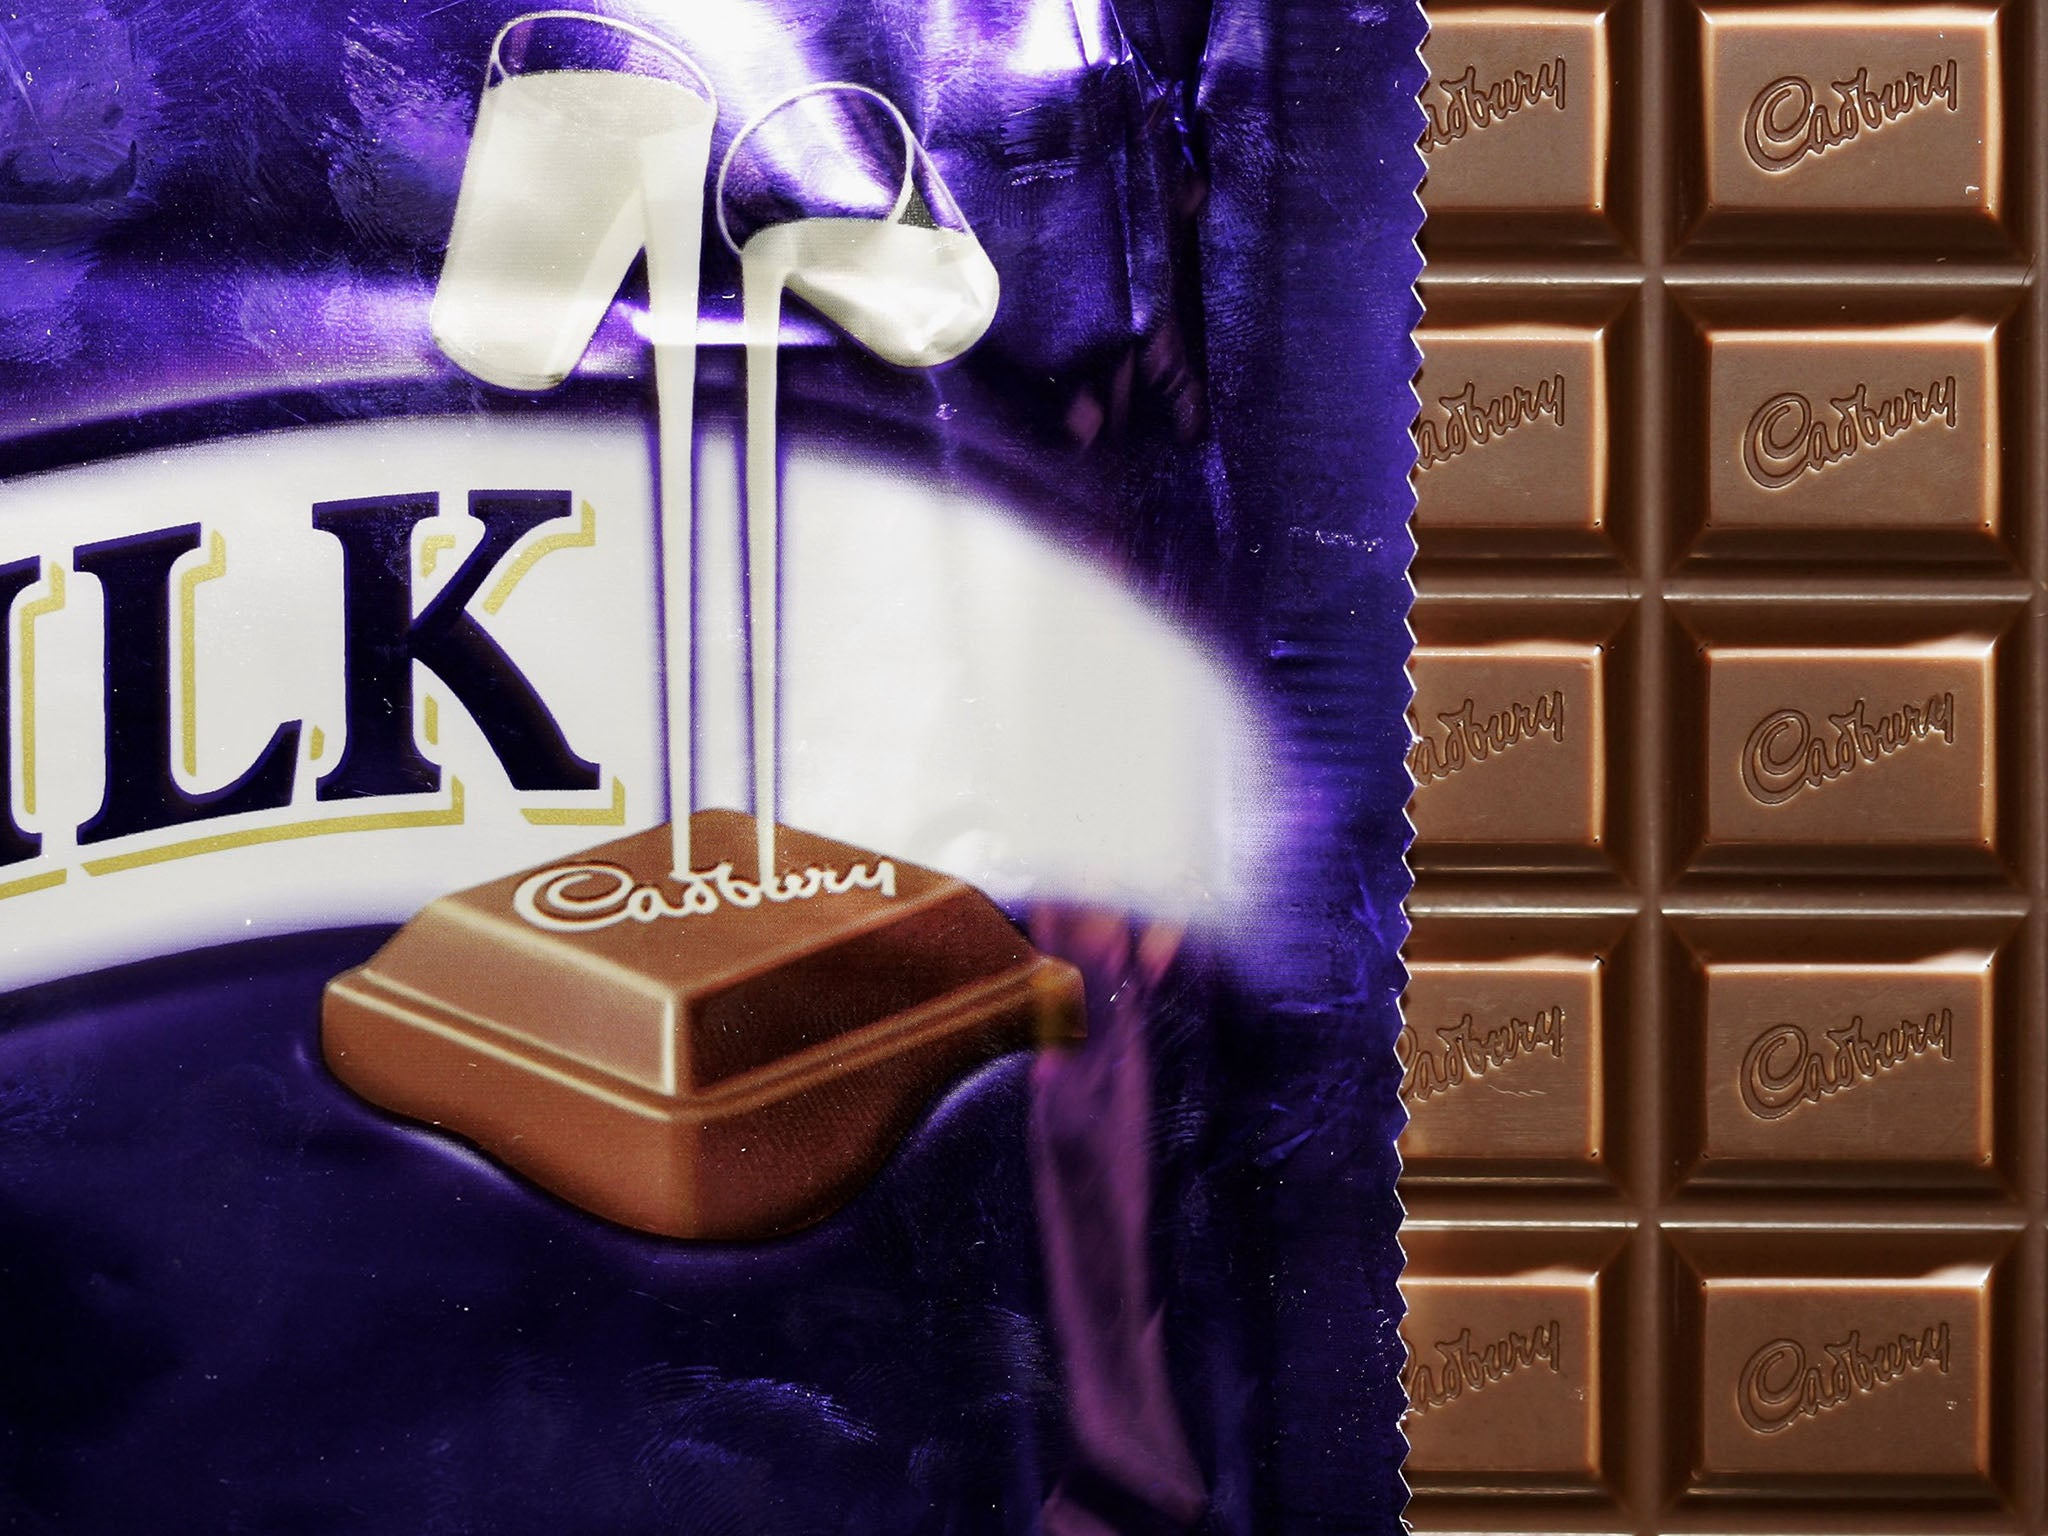 Cadburys Us Owner Mondelez Formerly Kraft Was Found To Have Avoided Paying Tens Of Millions Of Pounds In Corporation Tax On Cadburys Uk Earnings